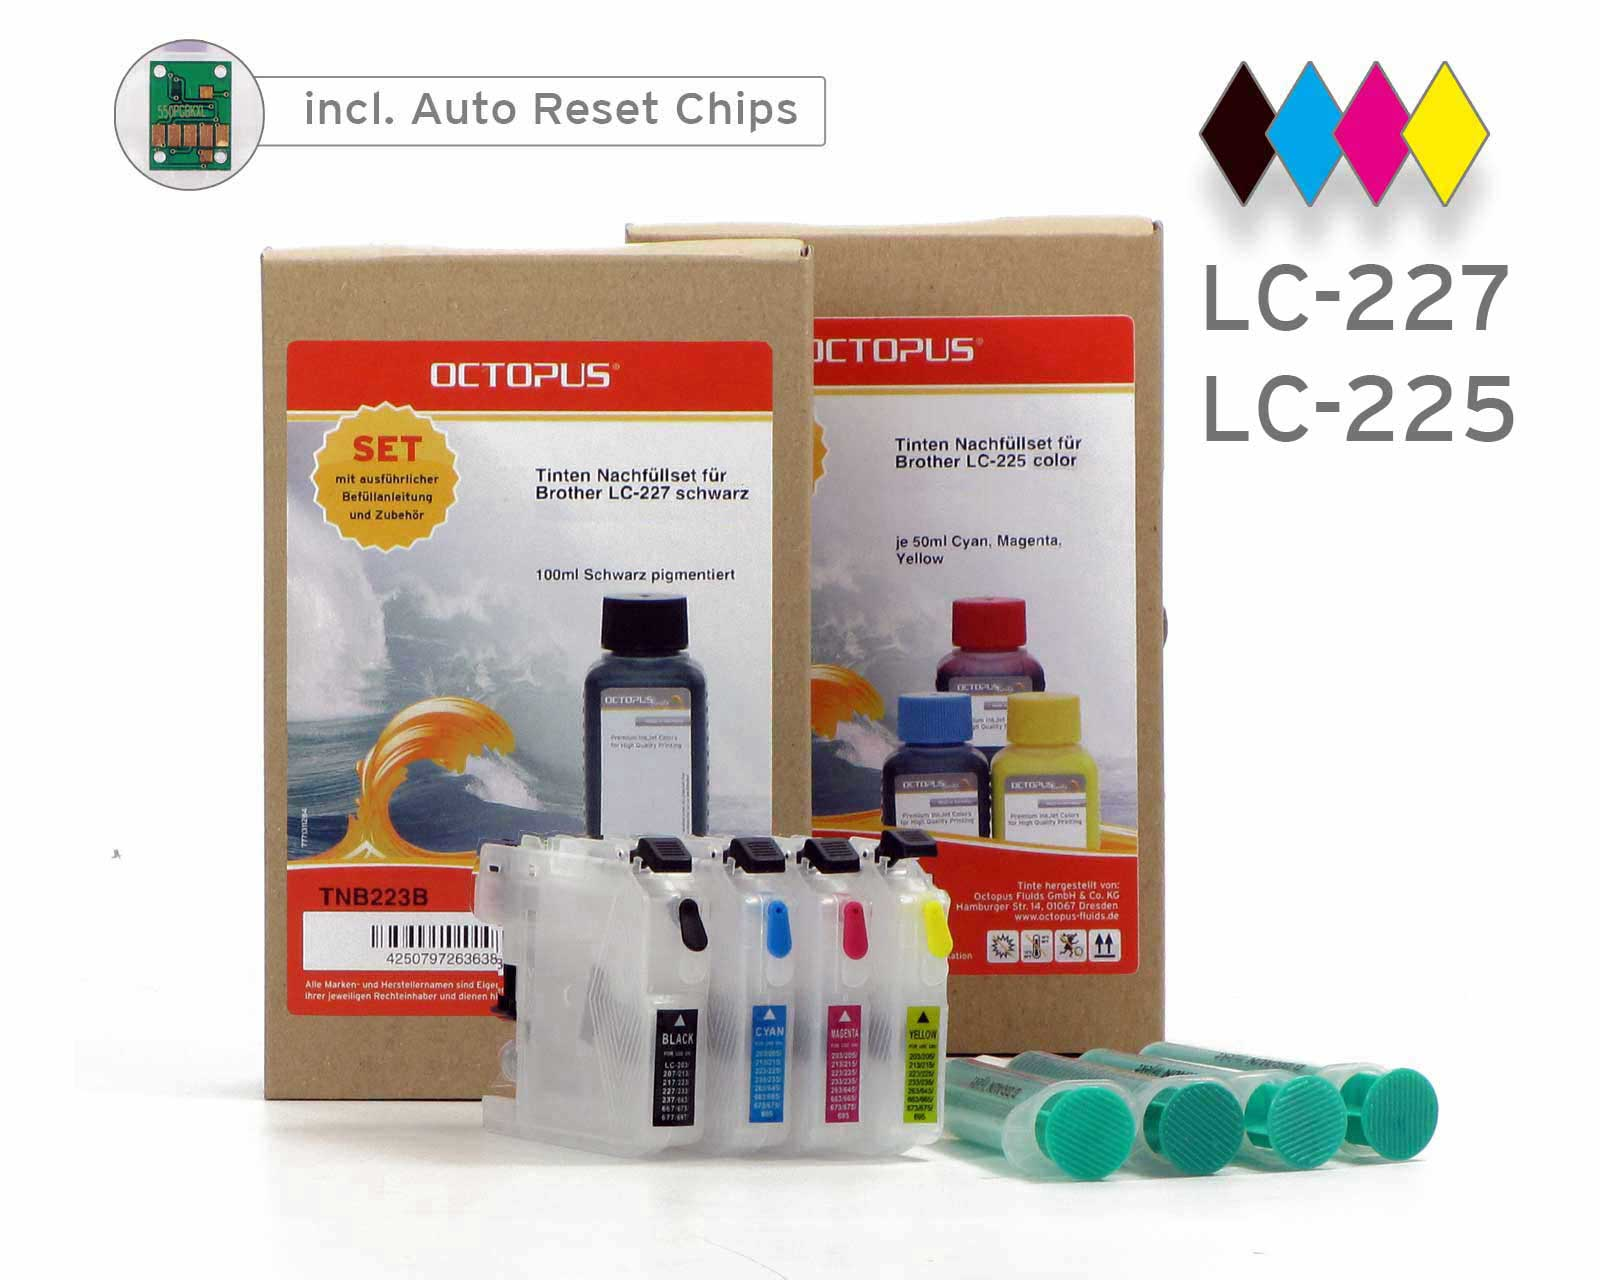 Set of refillable cartridges for Brother LC-227, LC-225 with ink refill kits